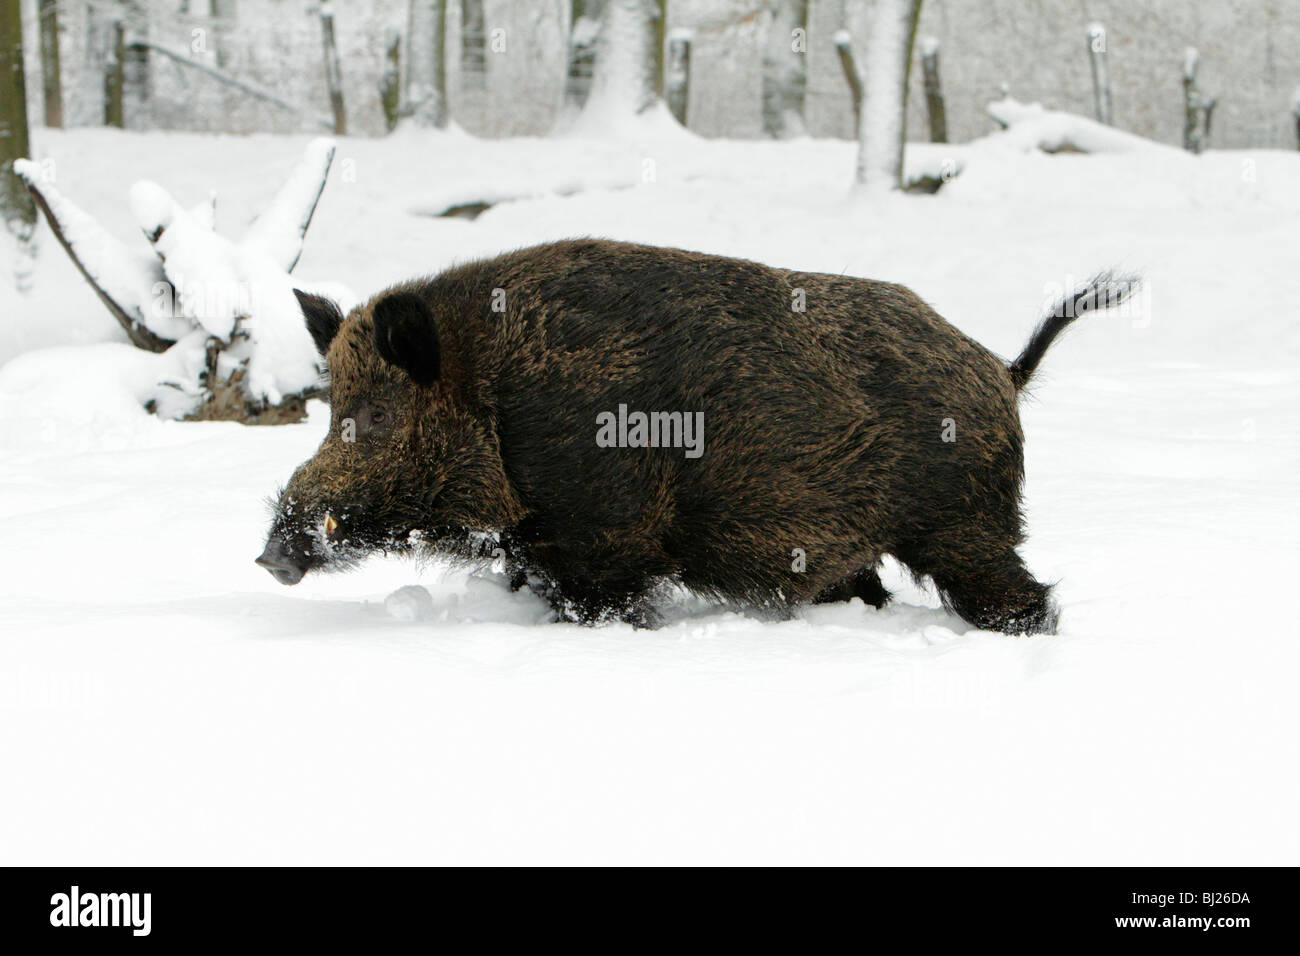 Wild Boar, Sus Scrofa, in snow covered forest, Germany - Stock Image